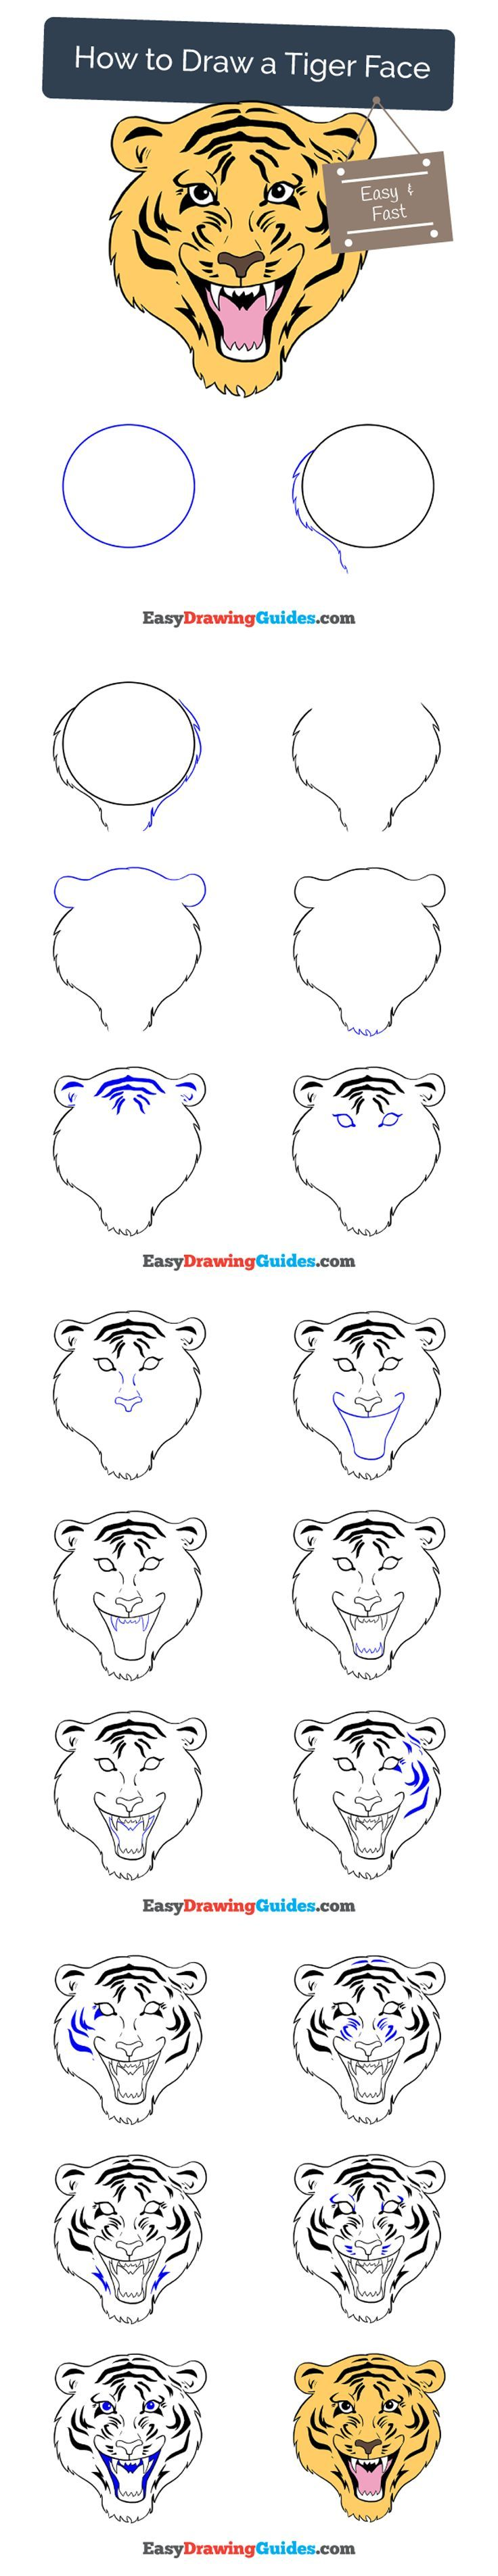 Uncategorized How To Draw A Tiger Step By Step best 25 how to draw tiger ideas on pinterest cartoon a face in few easy steps